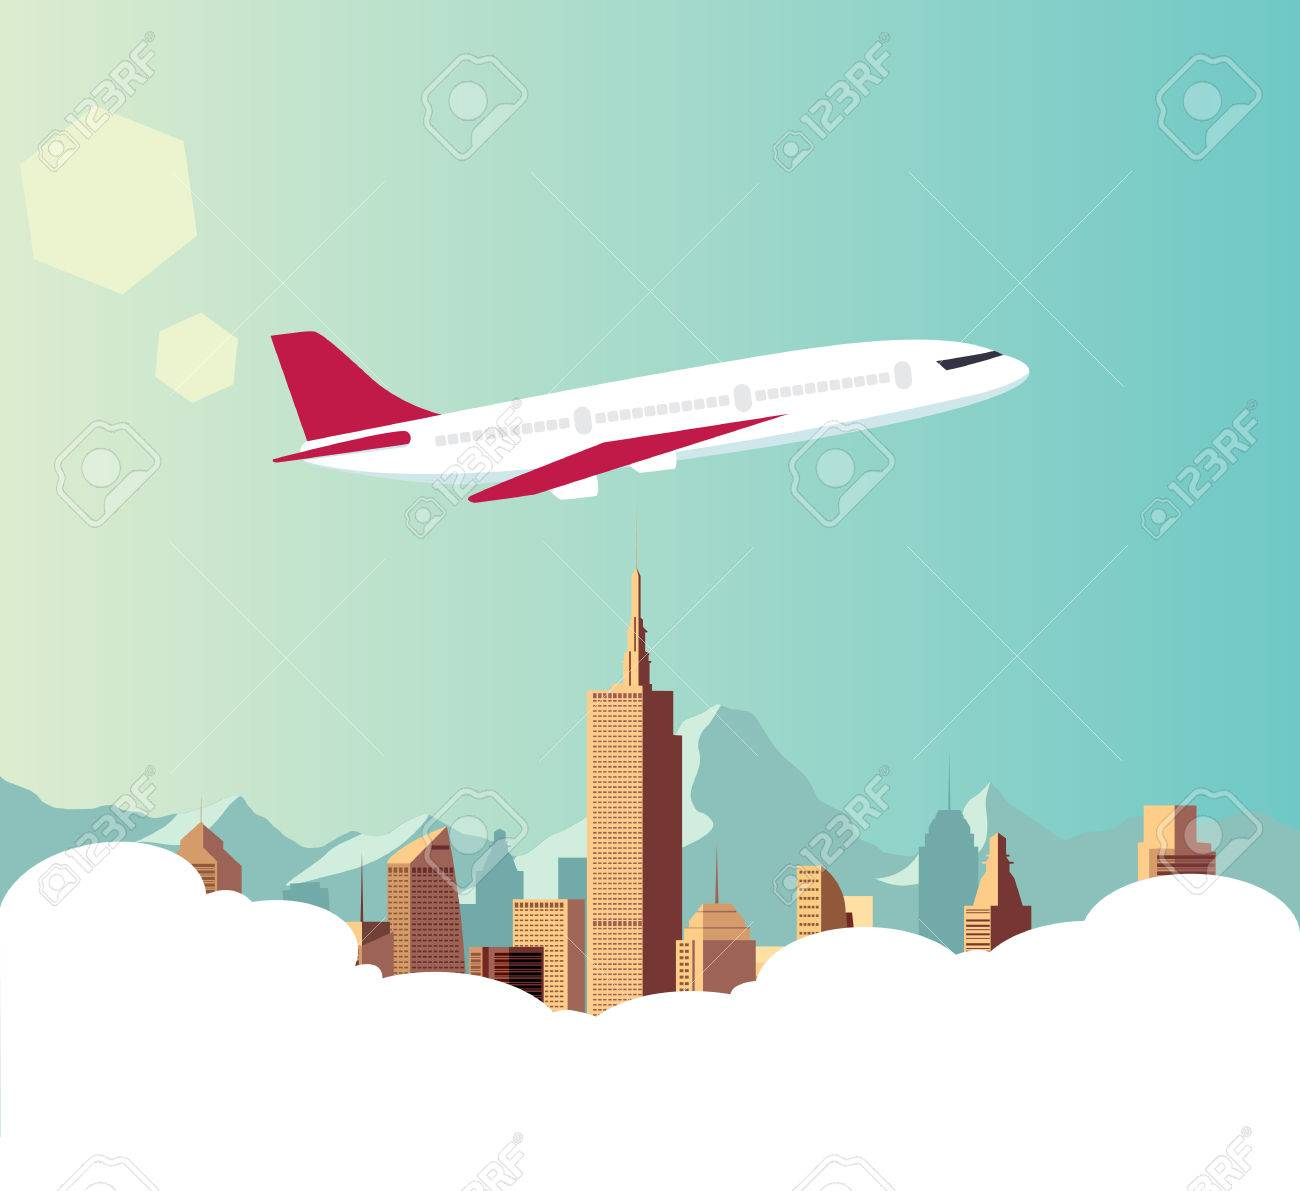 airplane illustrator with city background royalty free cliparts, vectors,  and stock illustration. image 54910778.  123rf